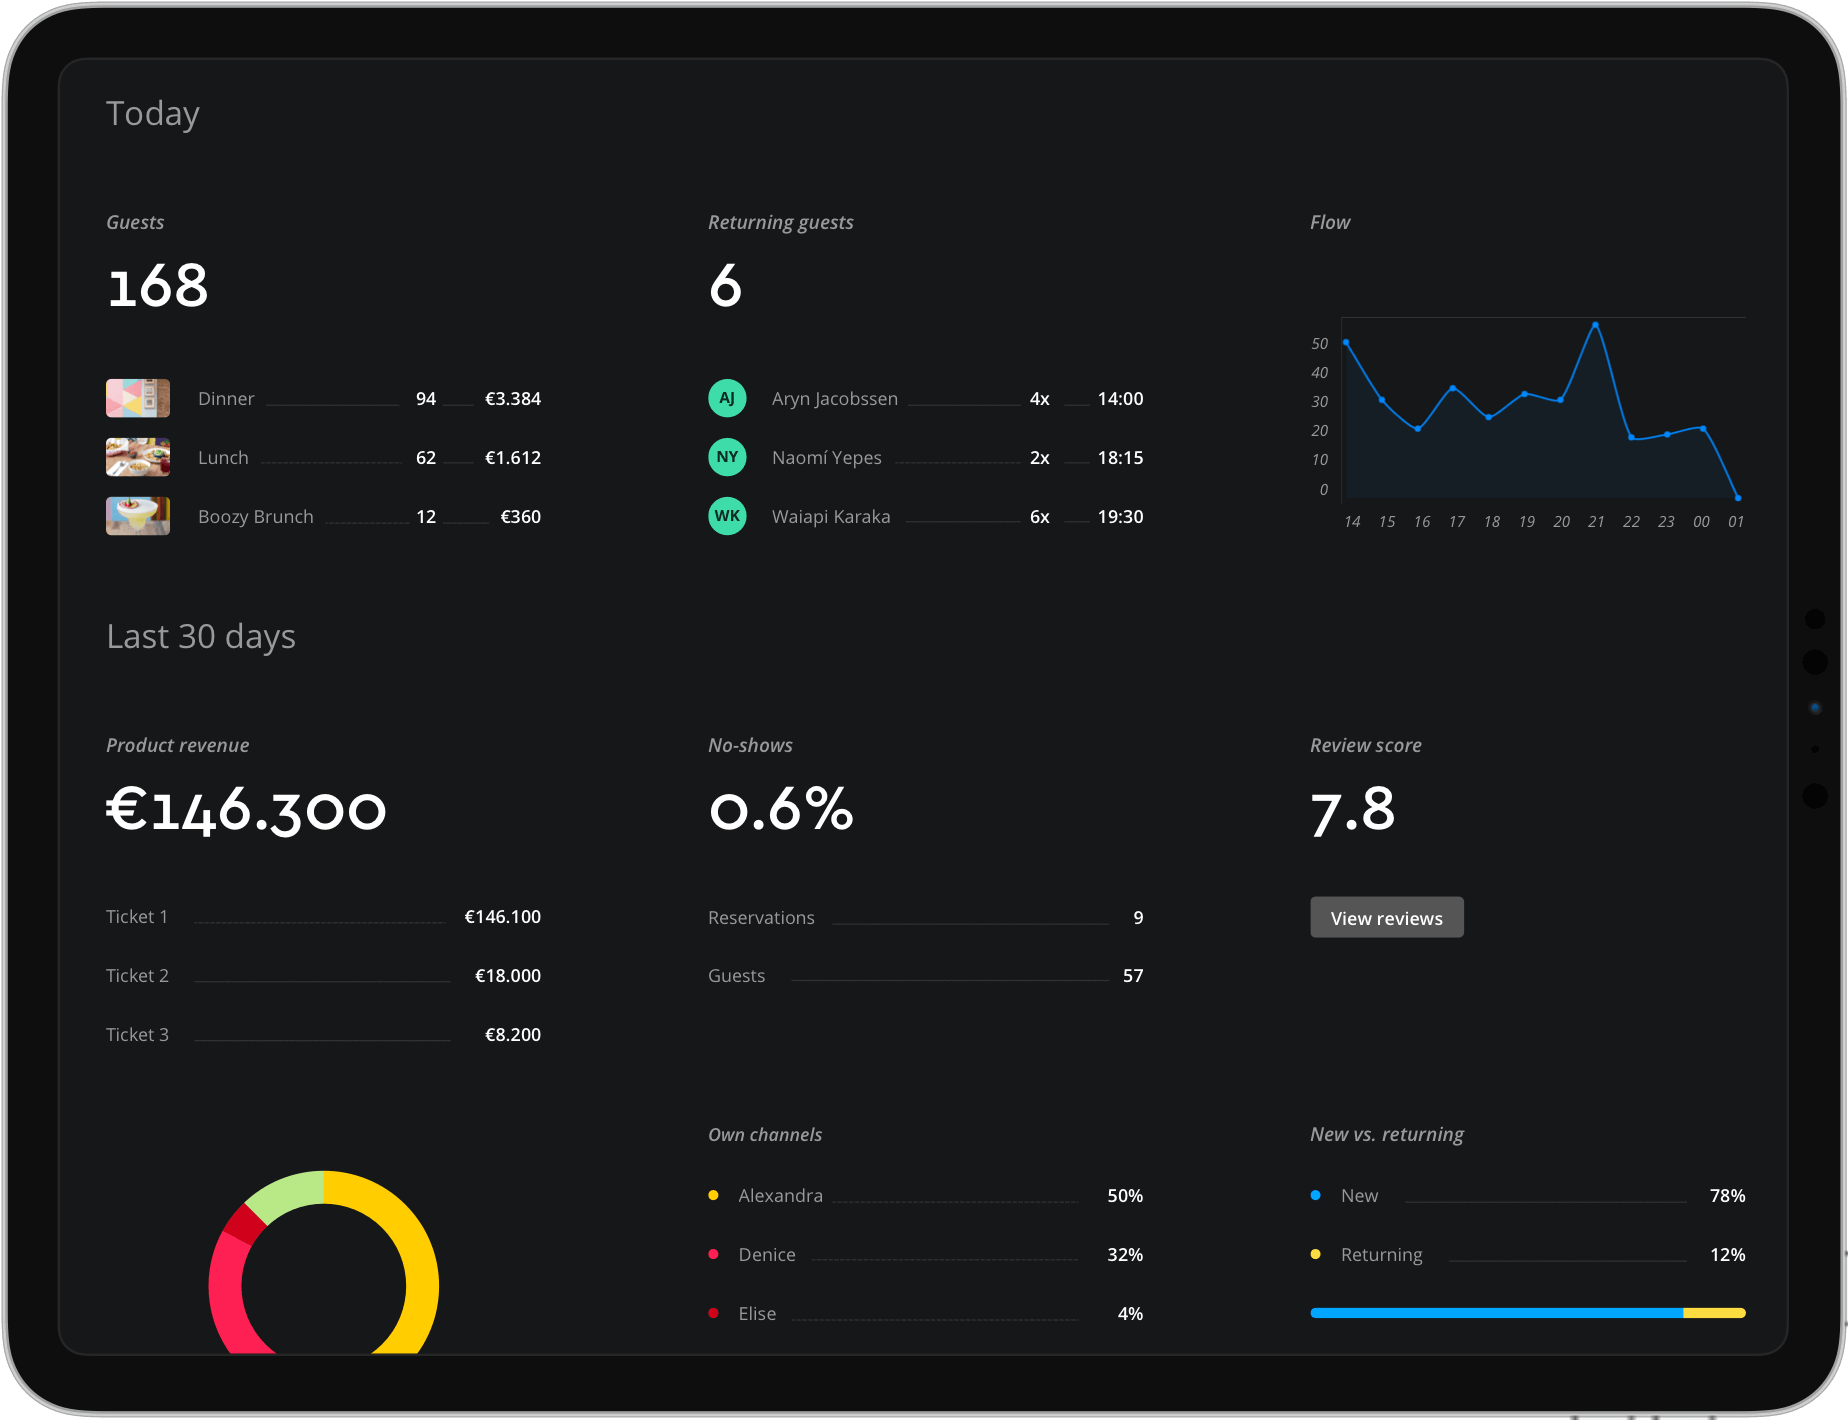 View all important reservation metrics on the Formitable Dashboard